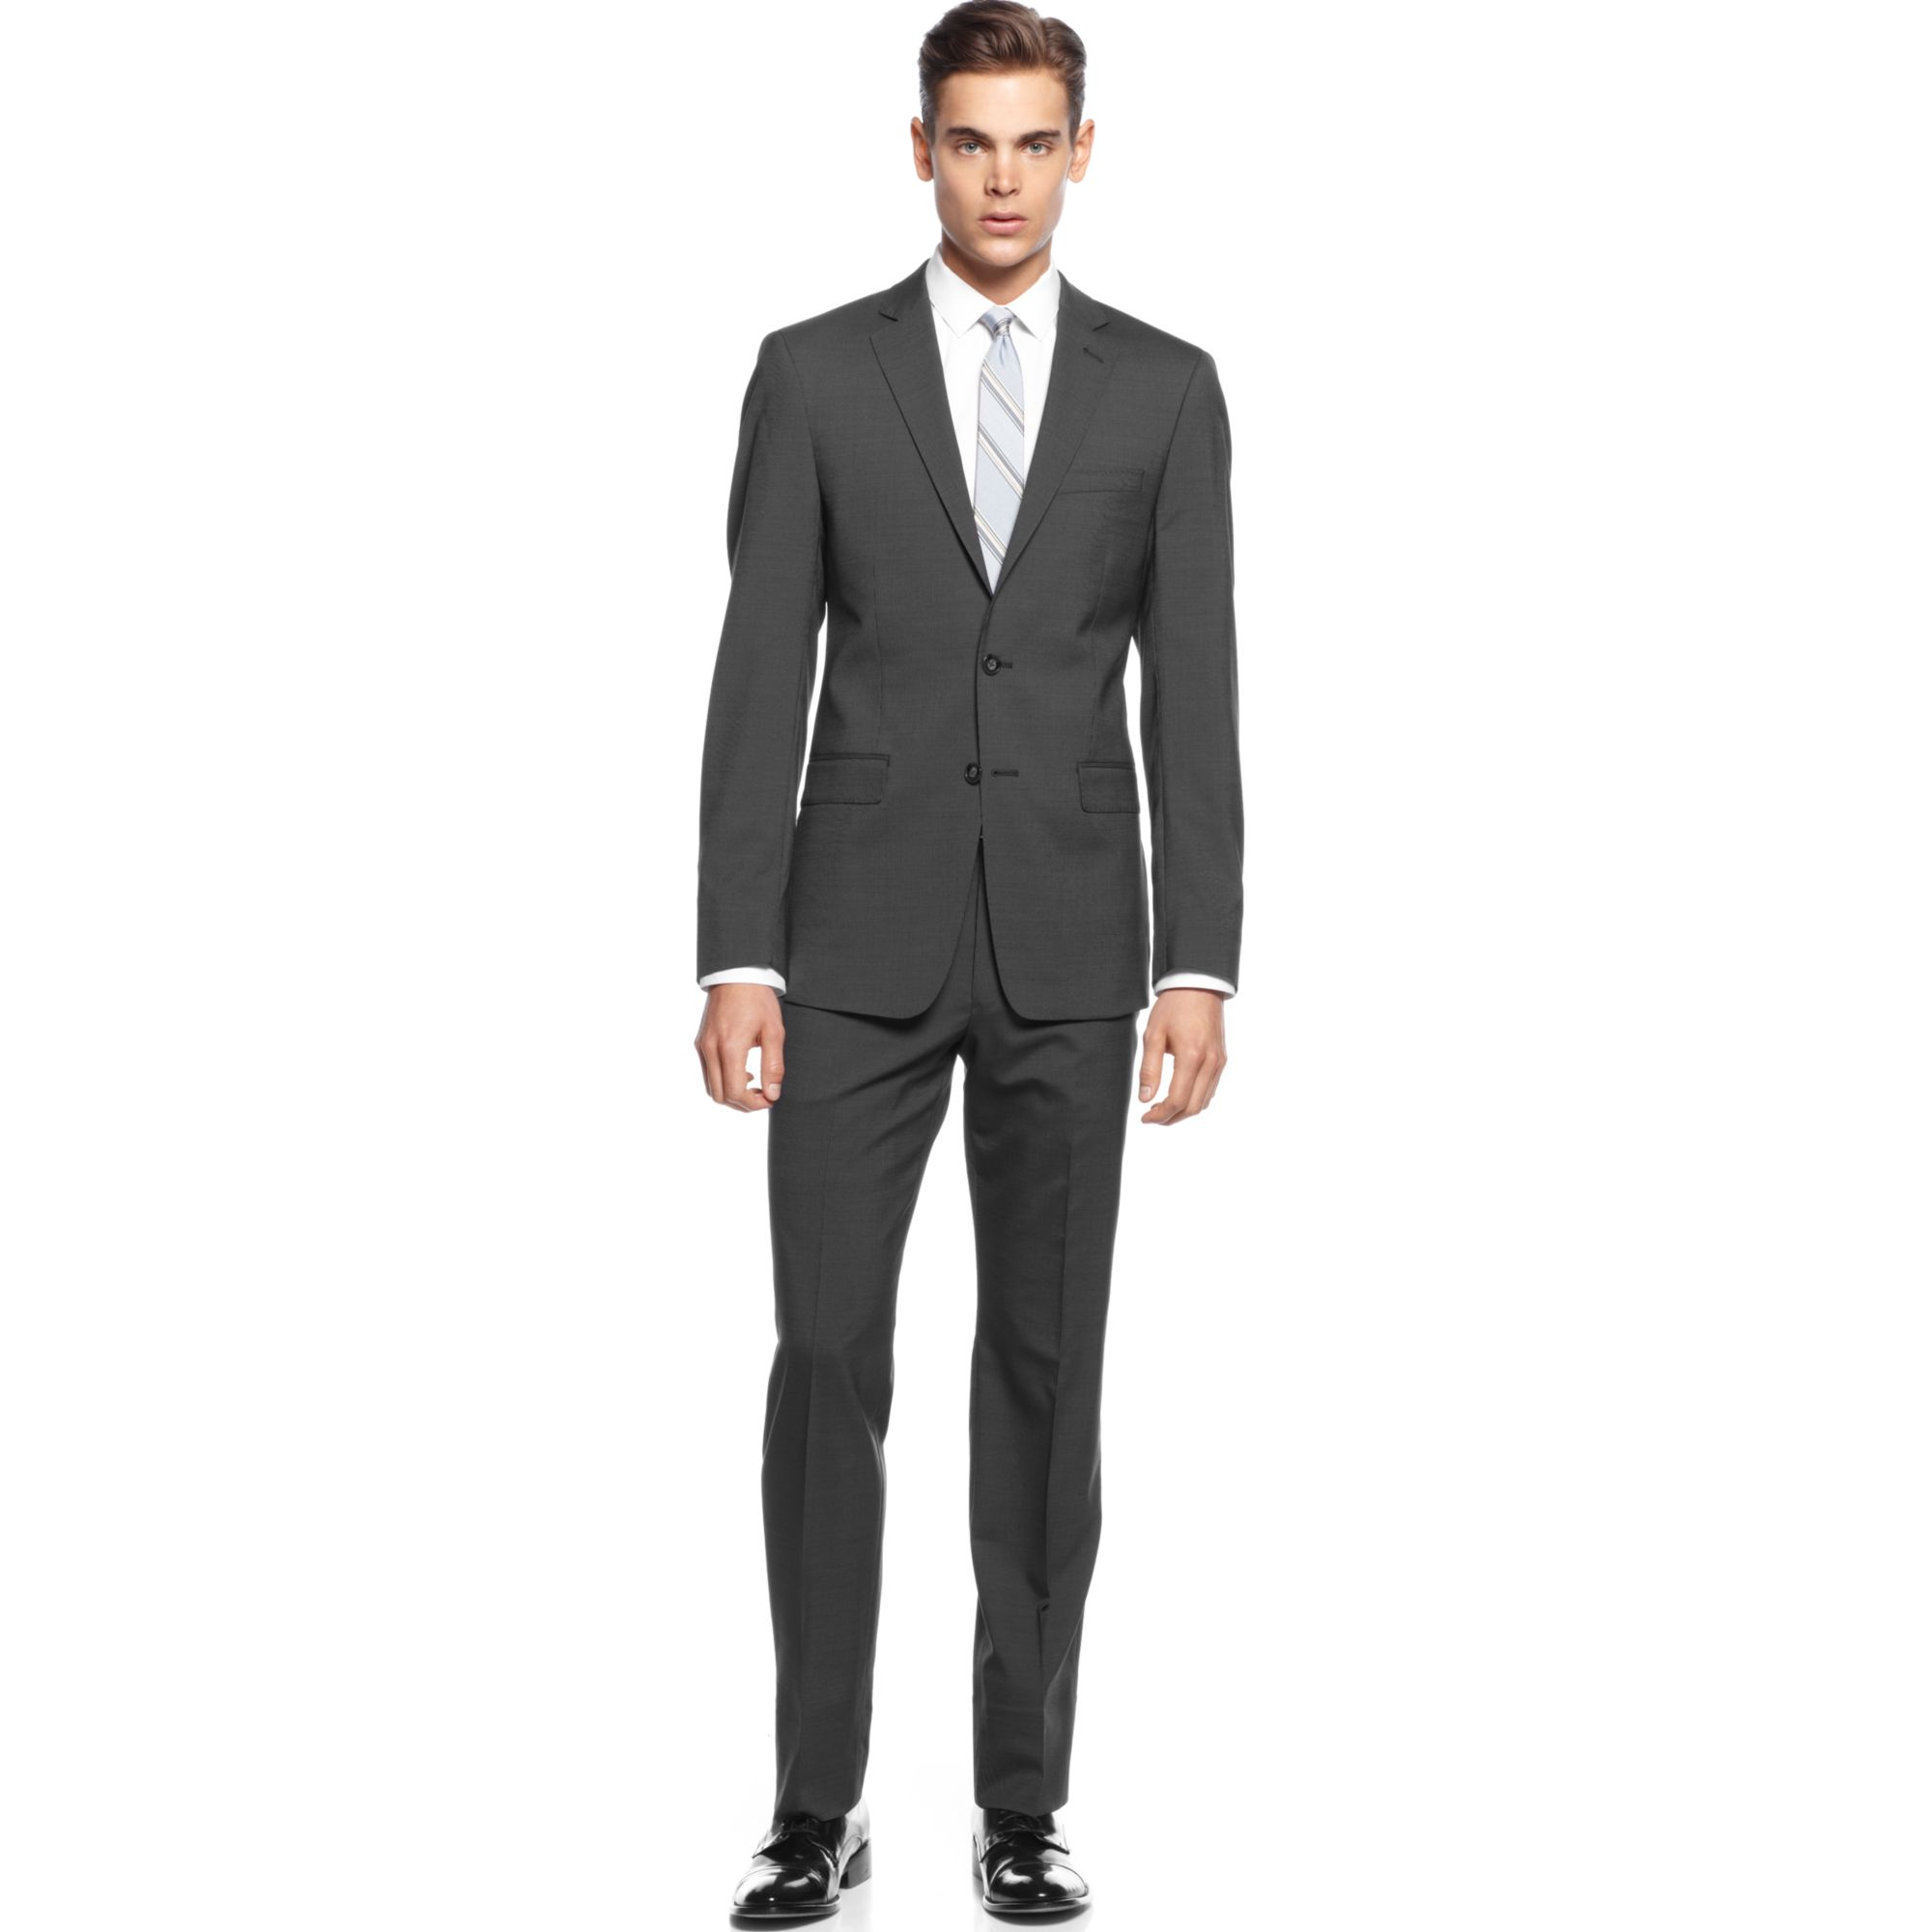 Enjoy free shipping and easy returns every day at Kohl's. Find great deals on Mens Slim Dress Suits at Kohl's today!